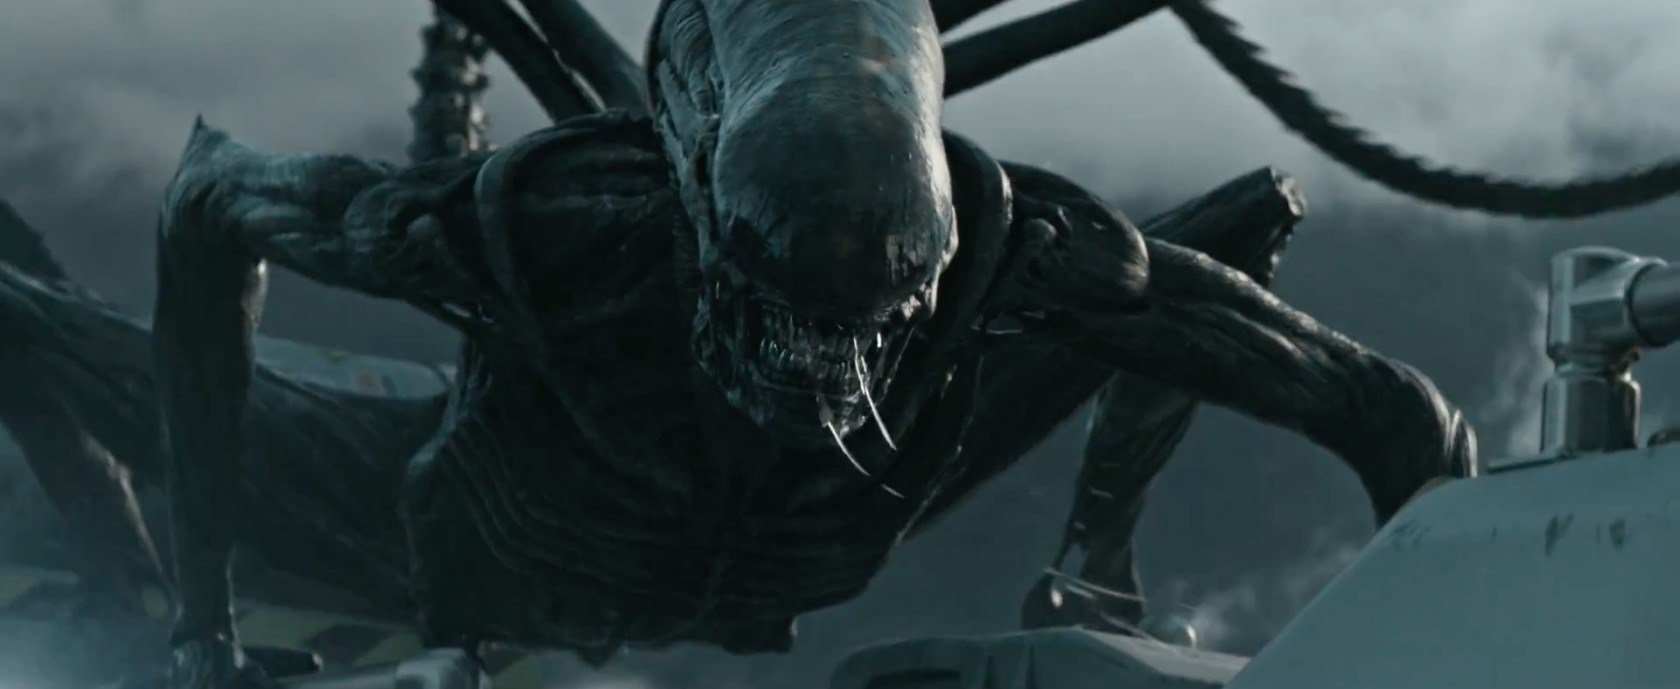 Photo du film Alien: Covenant avec l'Alien qui attaque